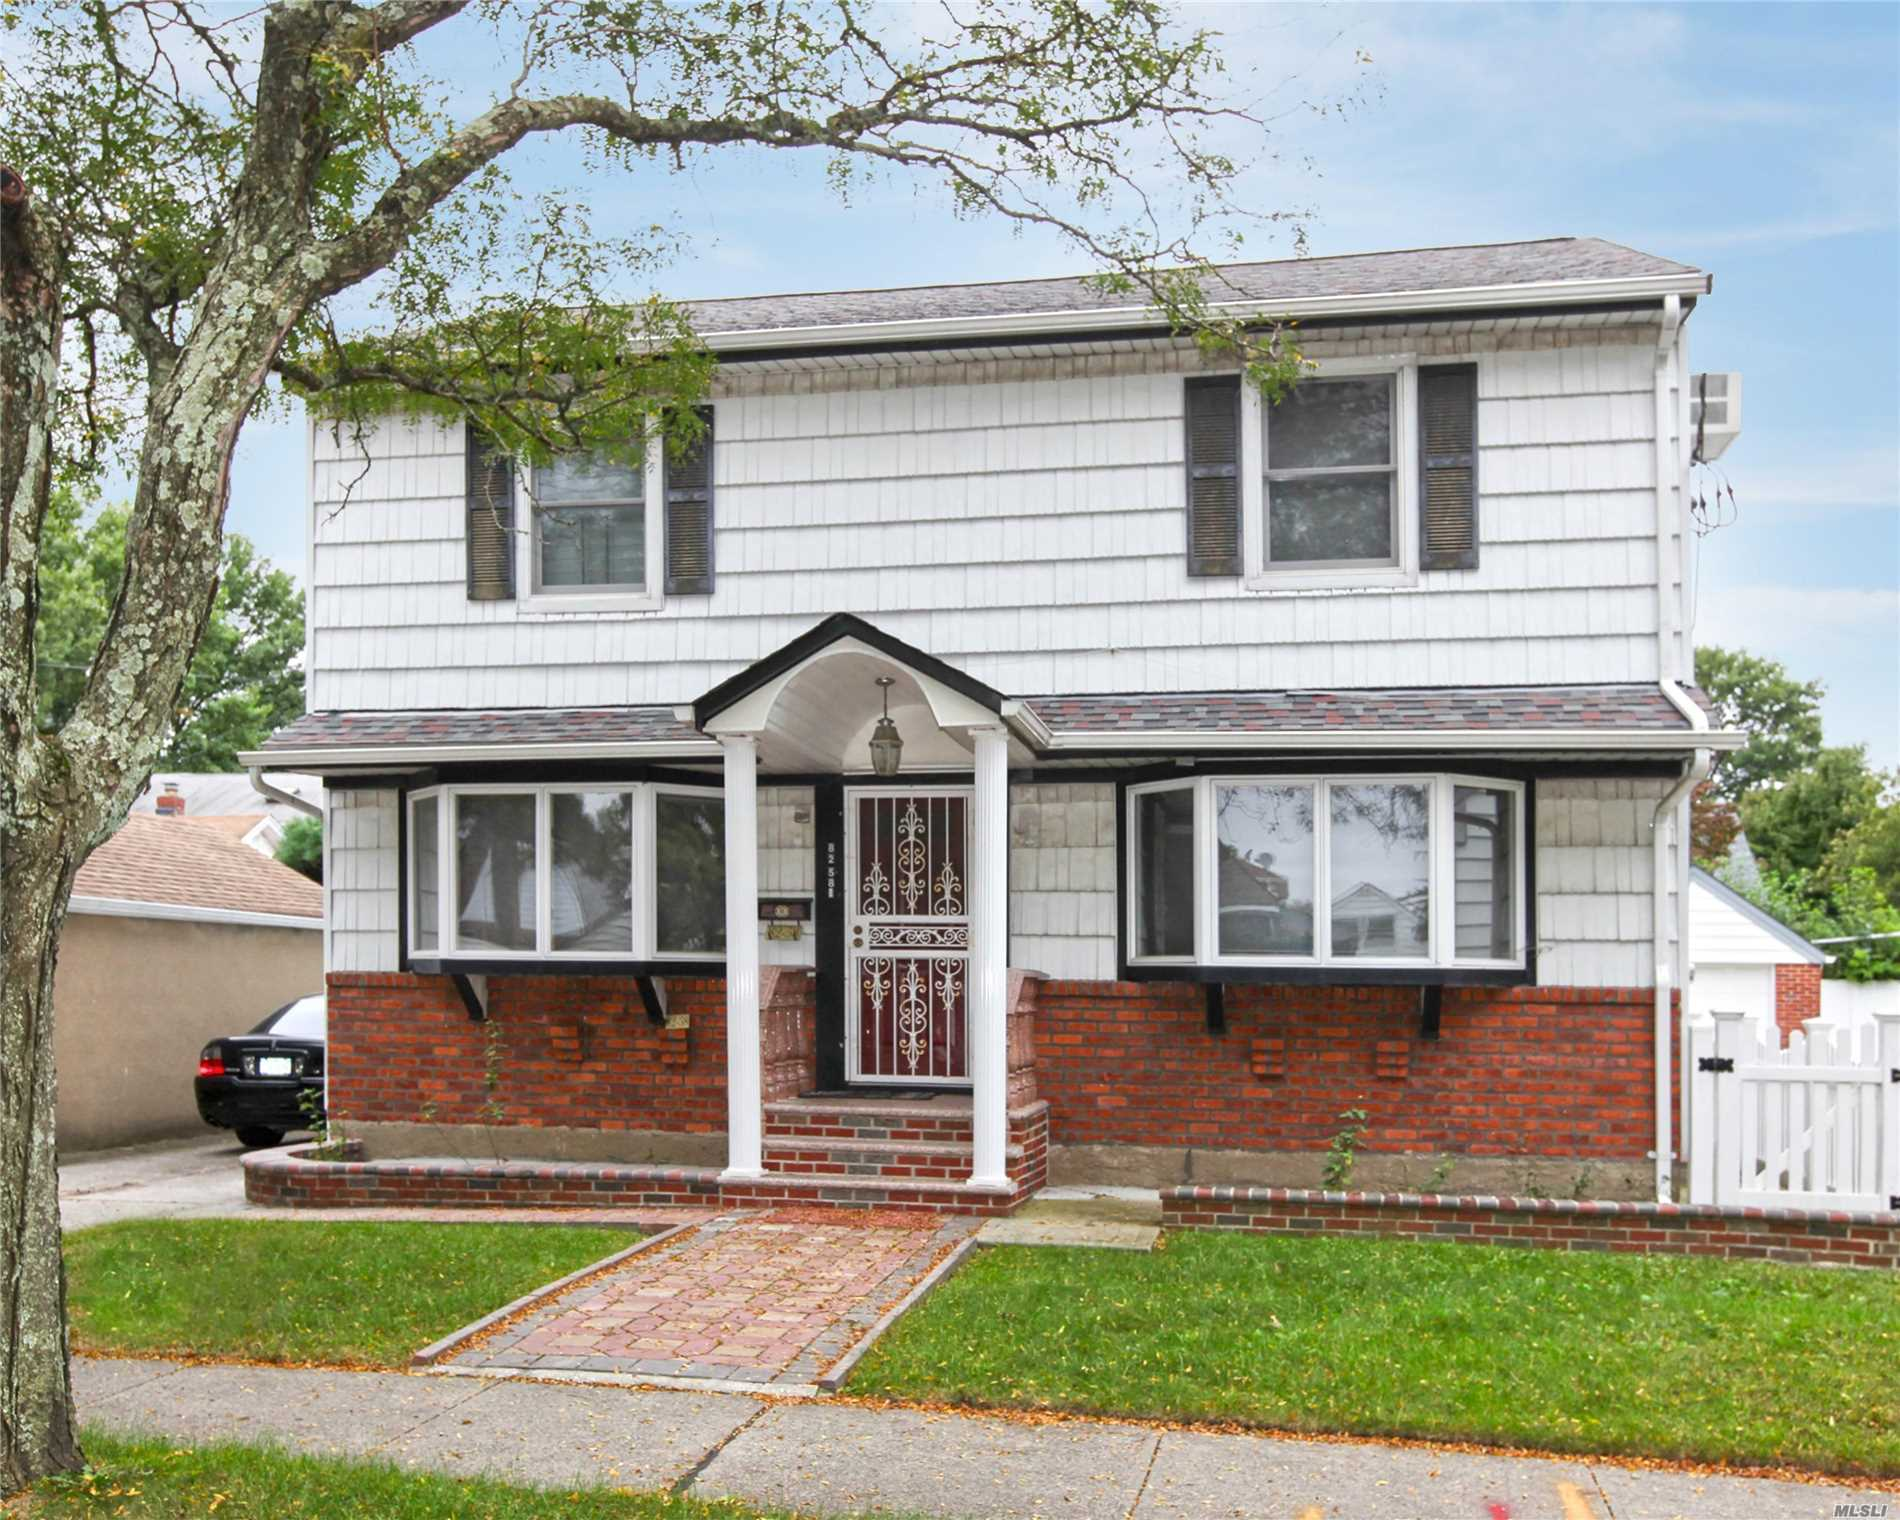 82-58 262nd St - Glen Oaks, New York